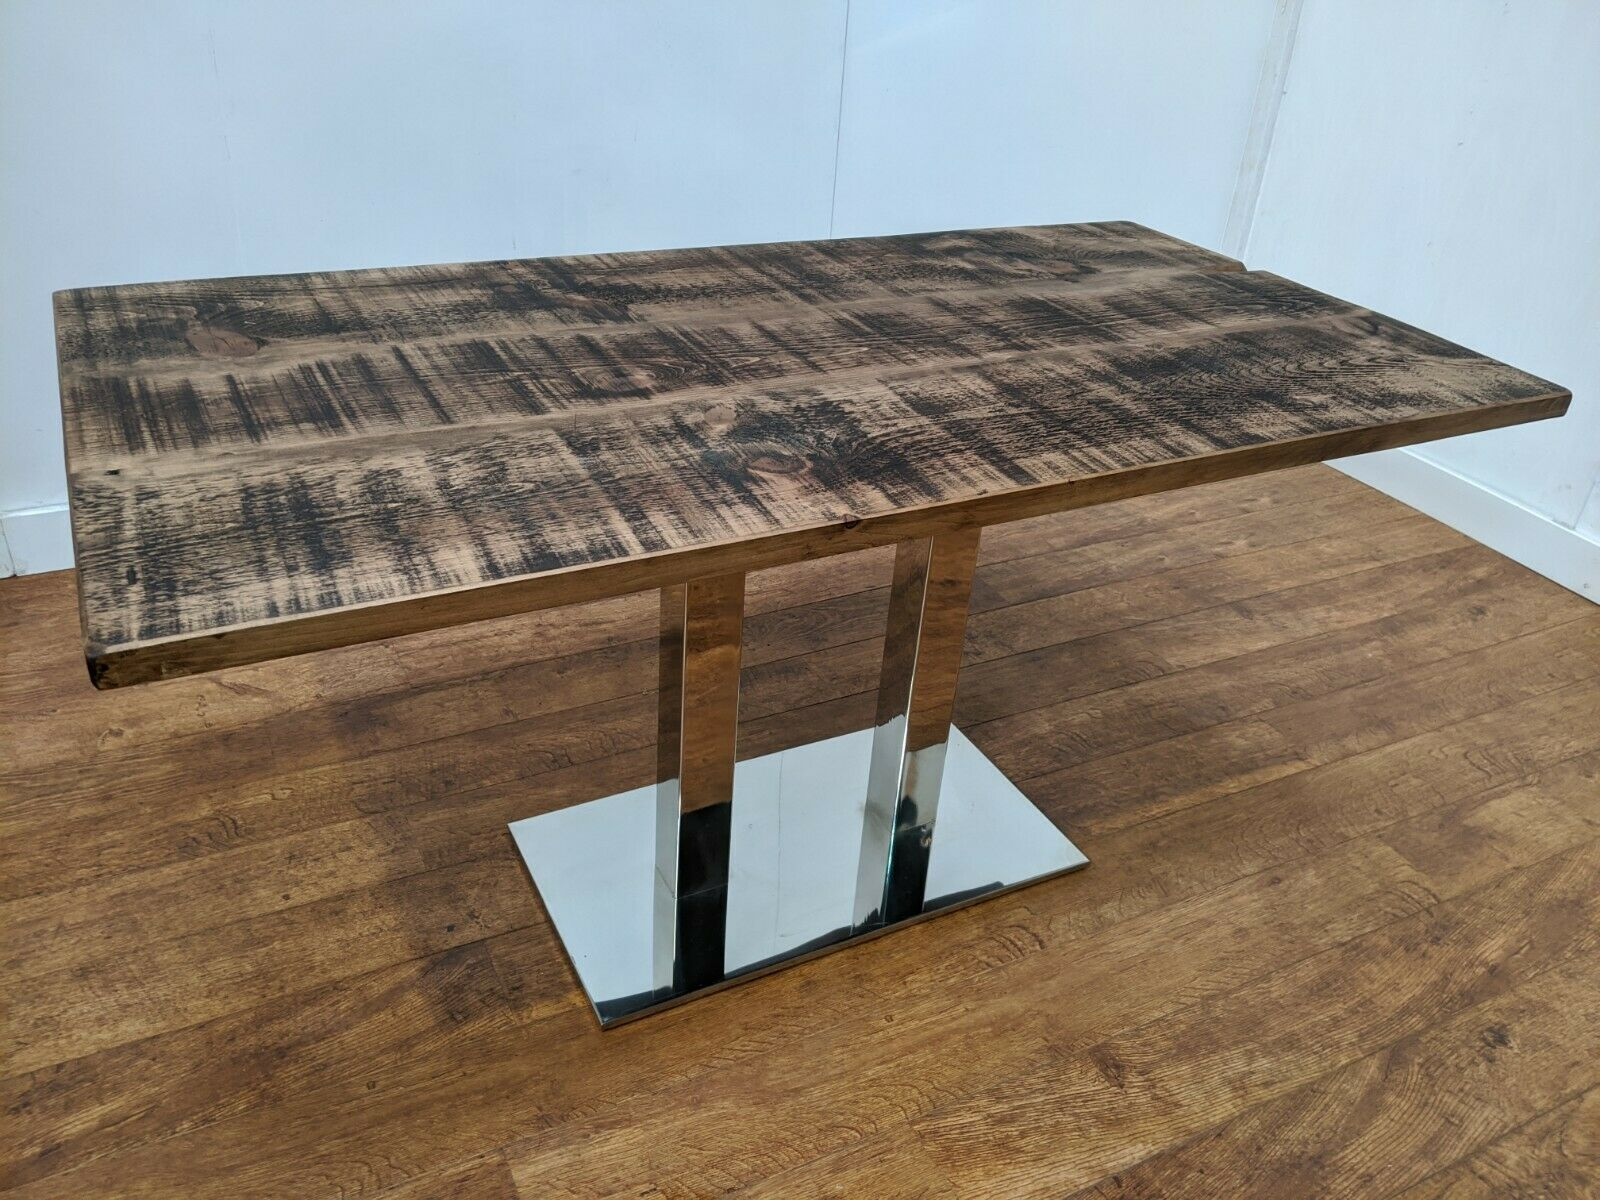 Details about New Large Rustic 6 Seat Heavy Duty Wooden